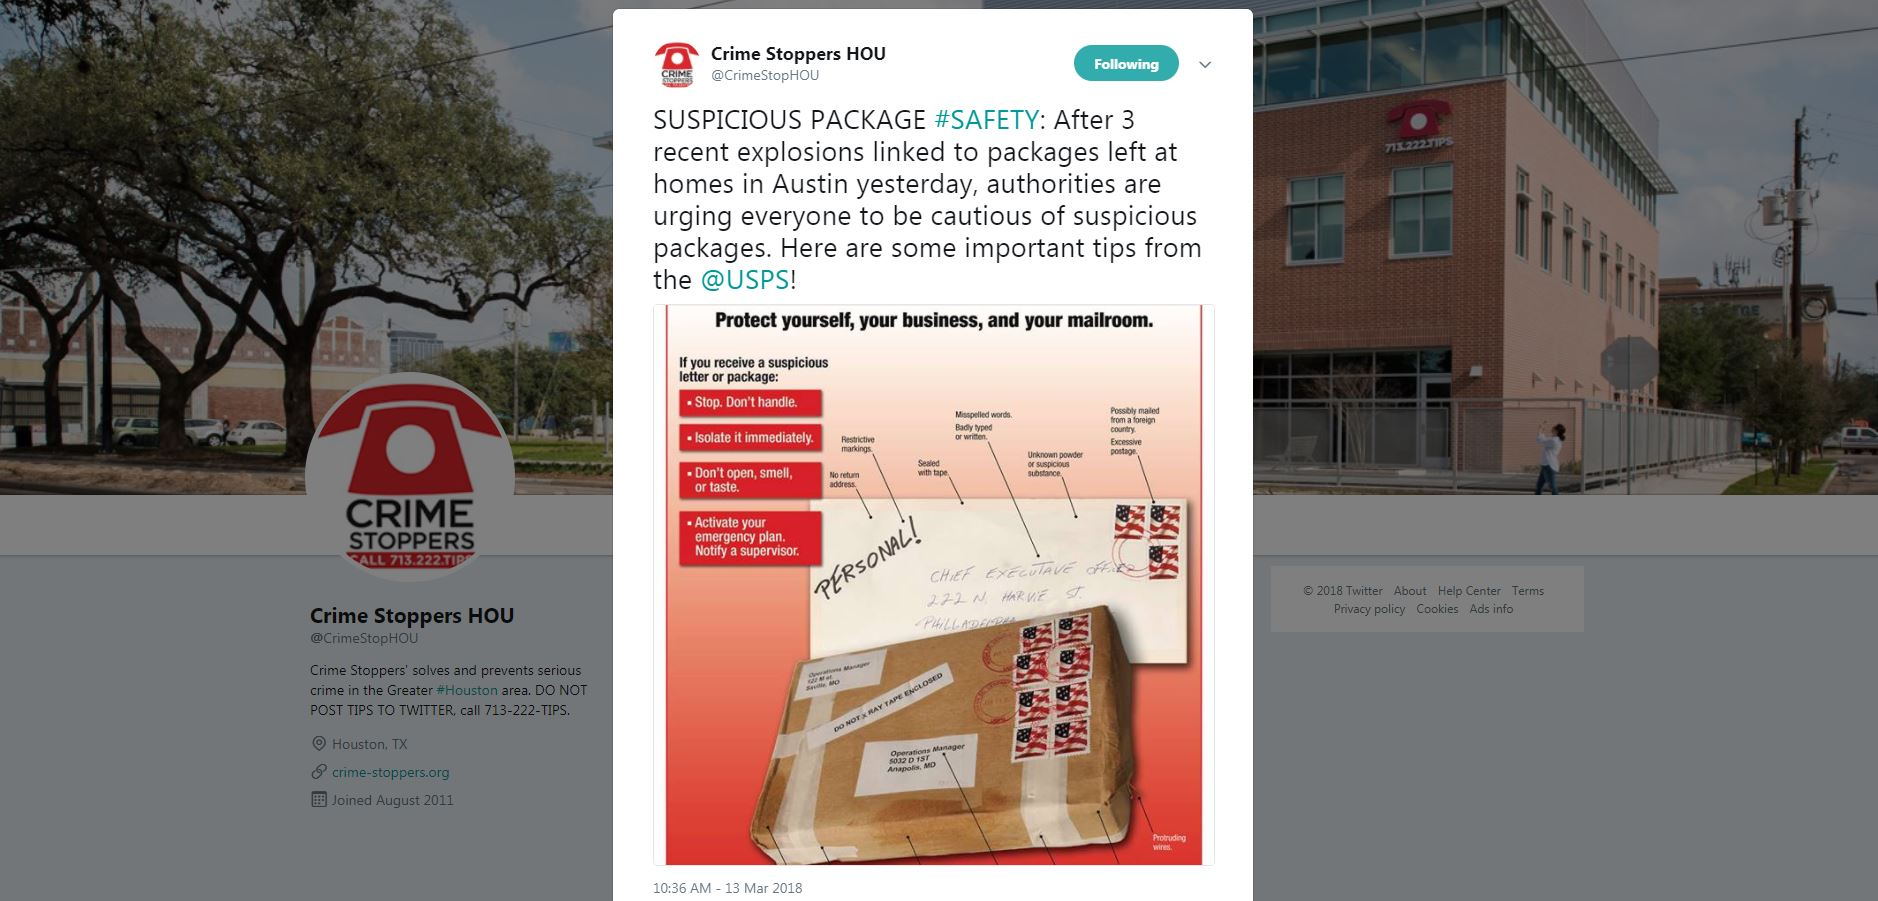 USPS offers tips to spot suspicious packages after Austin